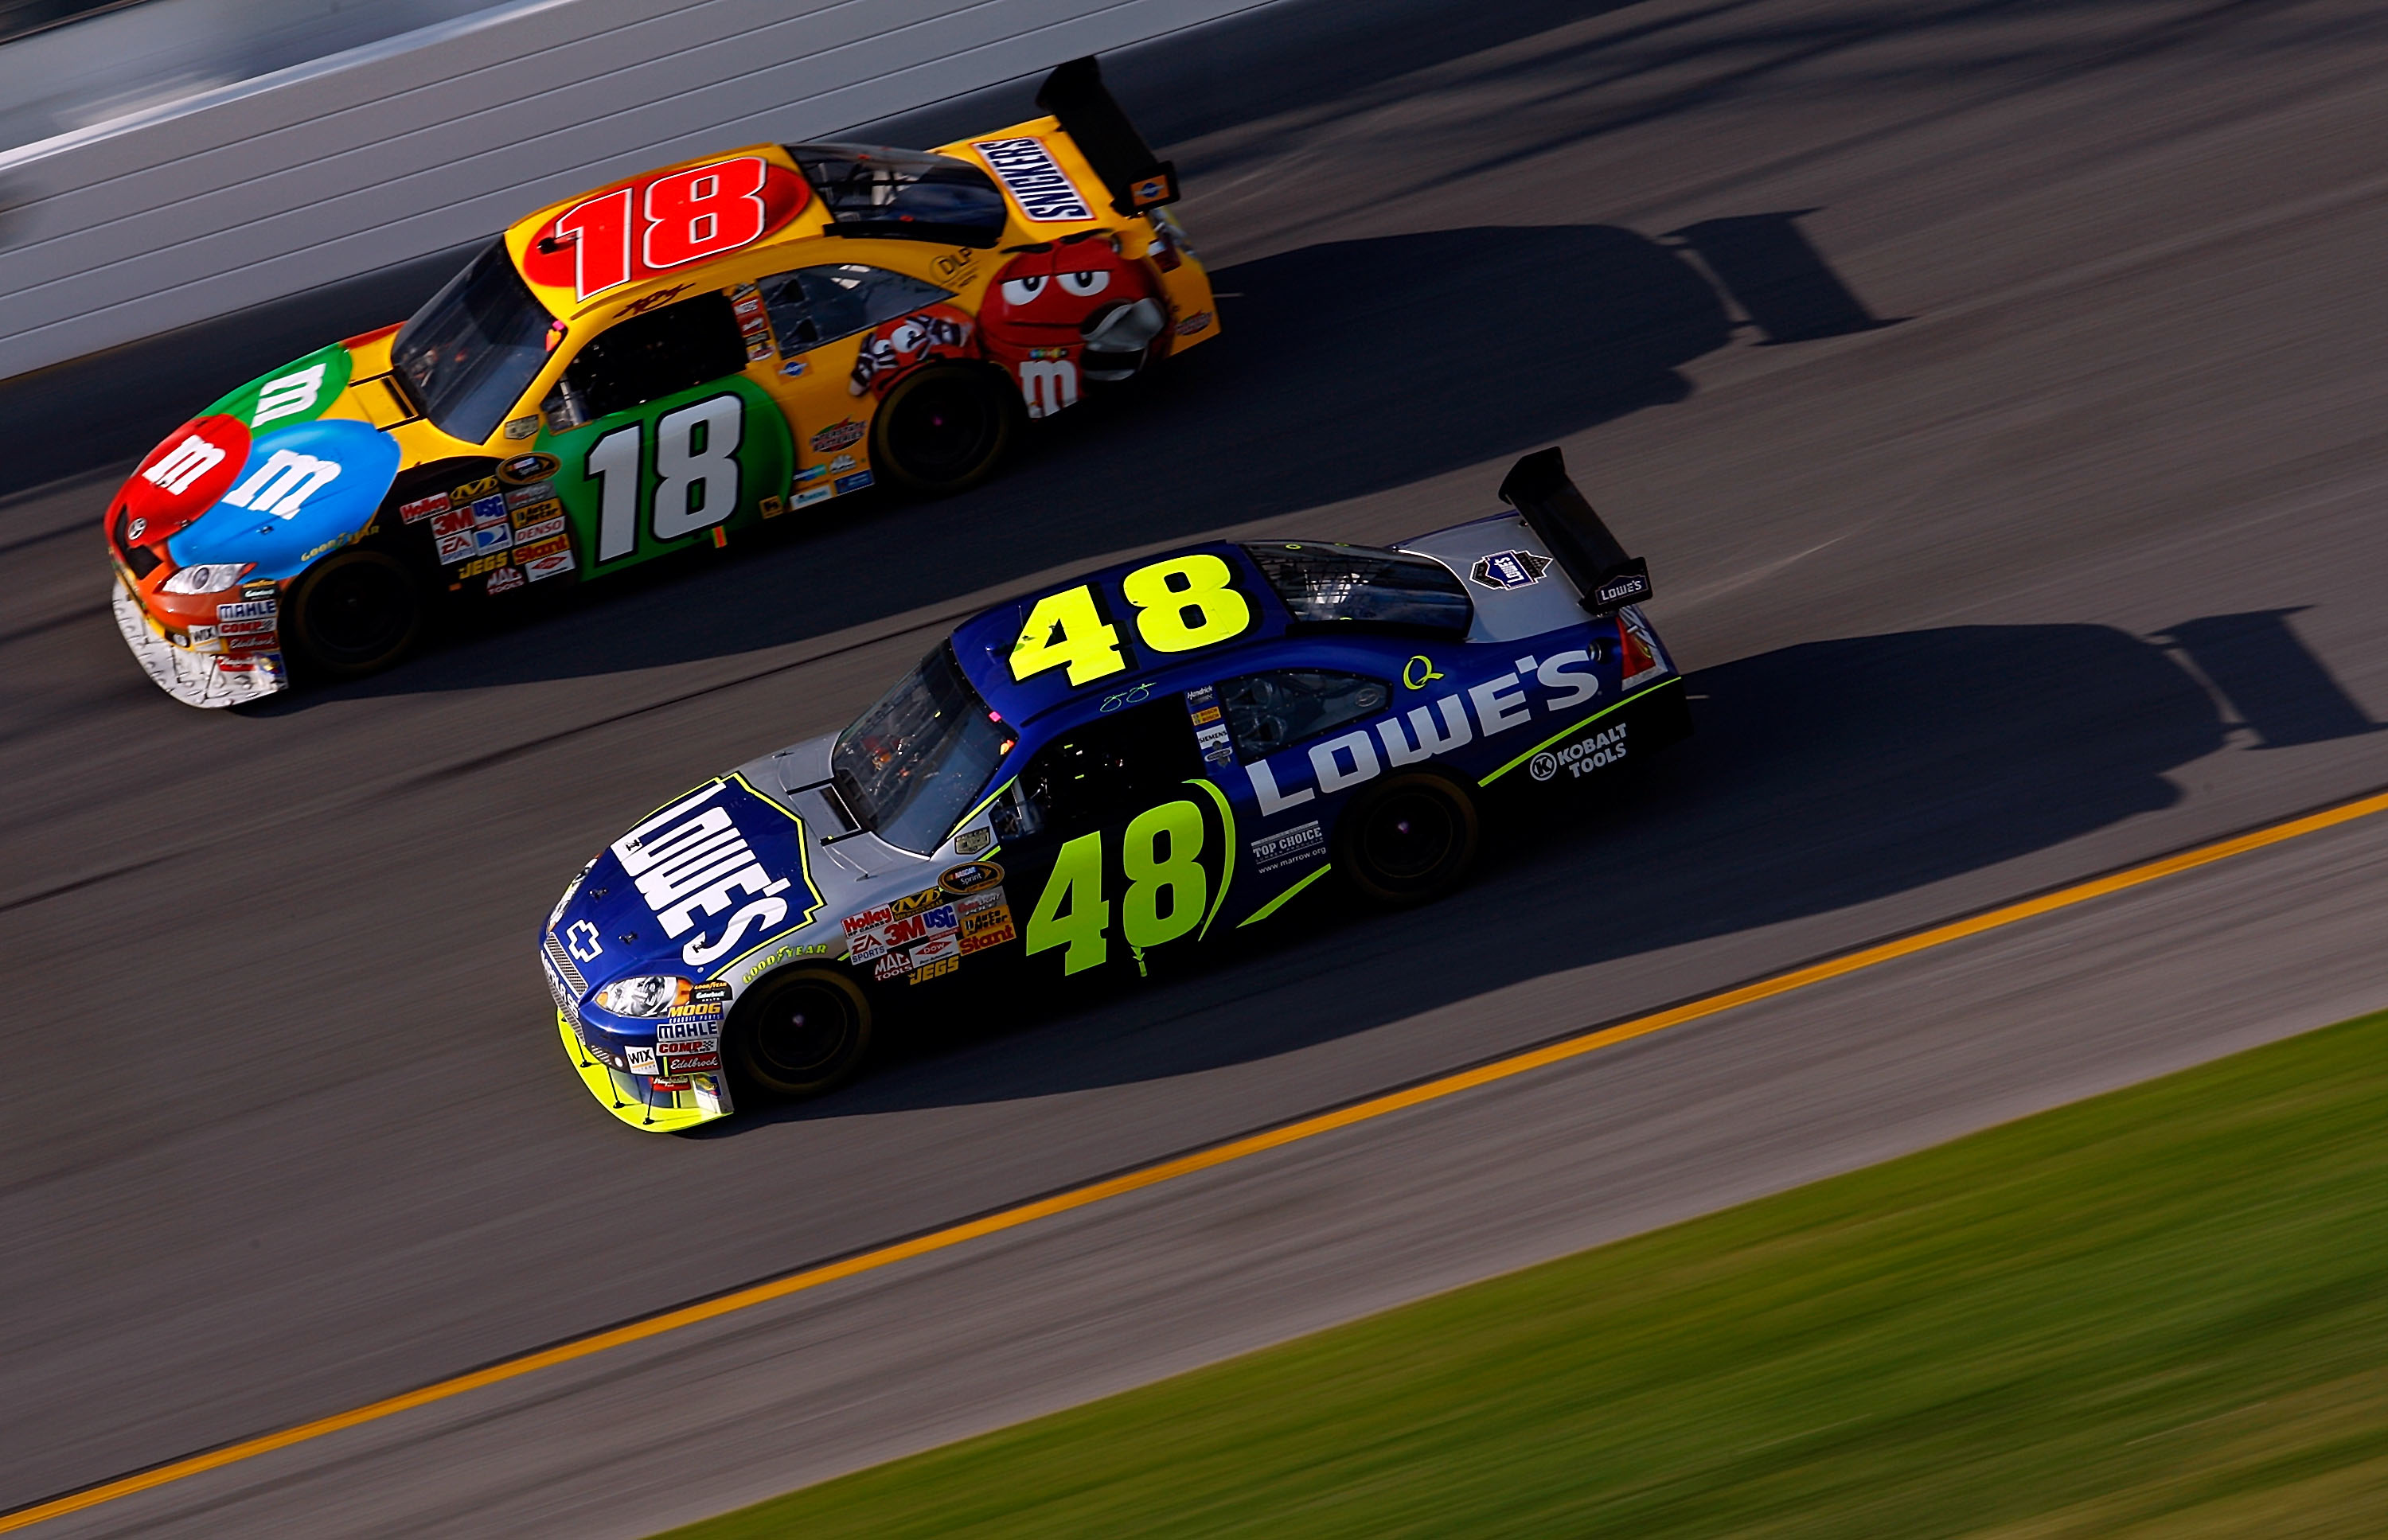 Restrictor plate racing is the one facet of NASCAR Jimmie Johnson does not dominate.